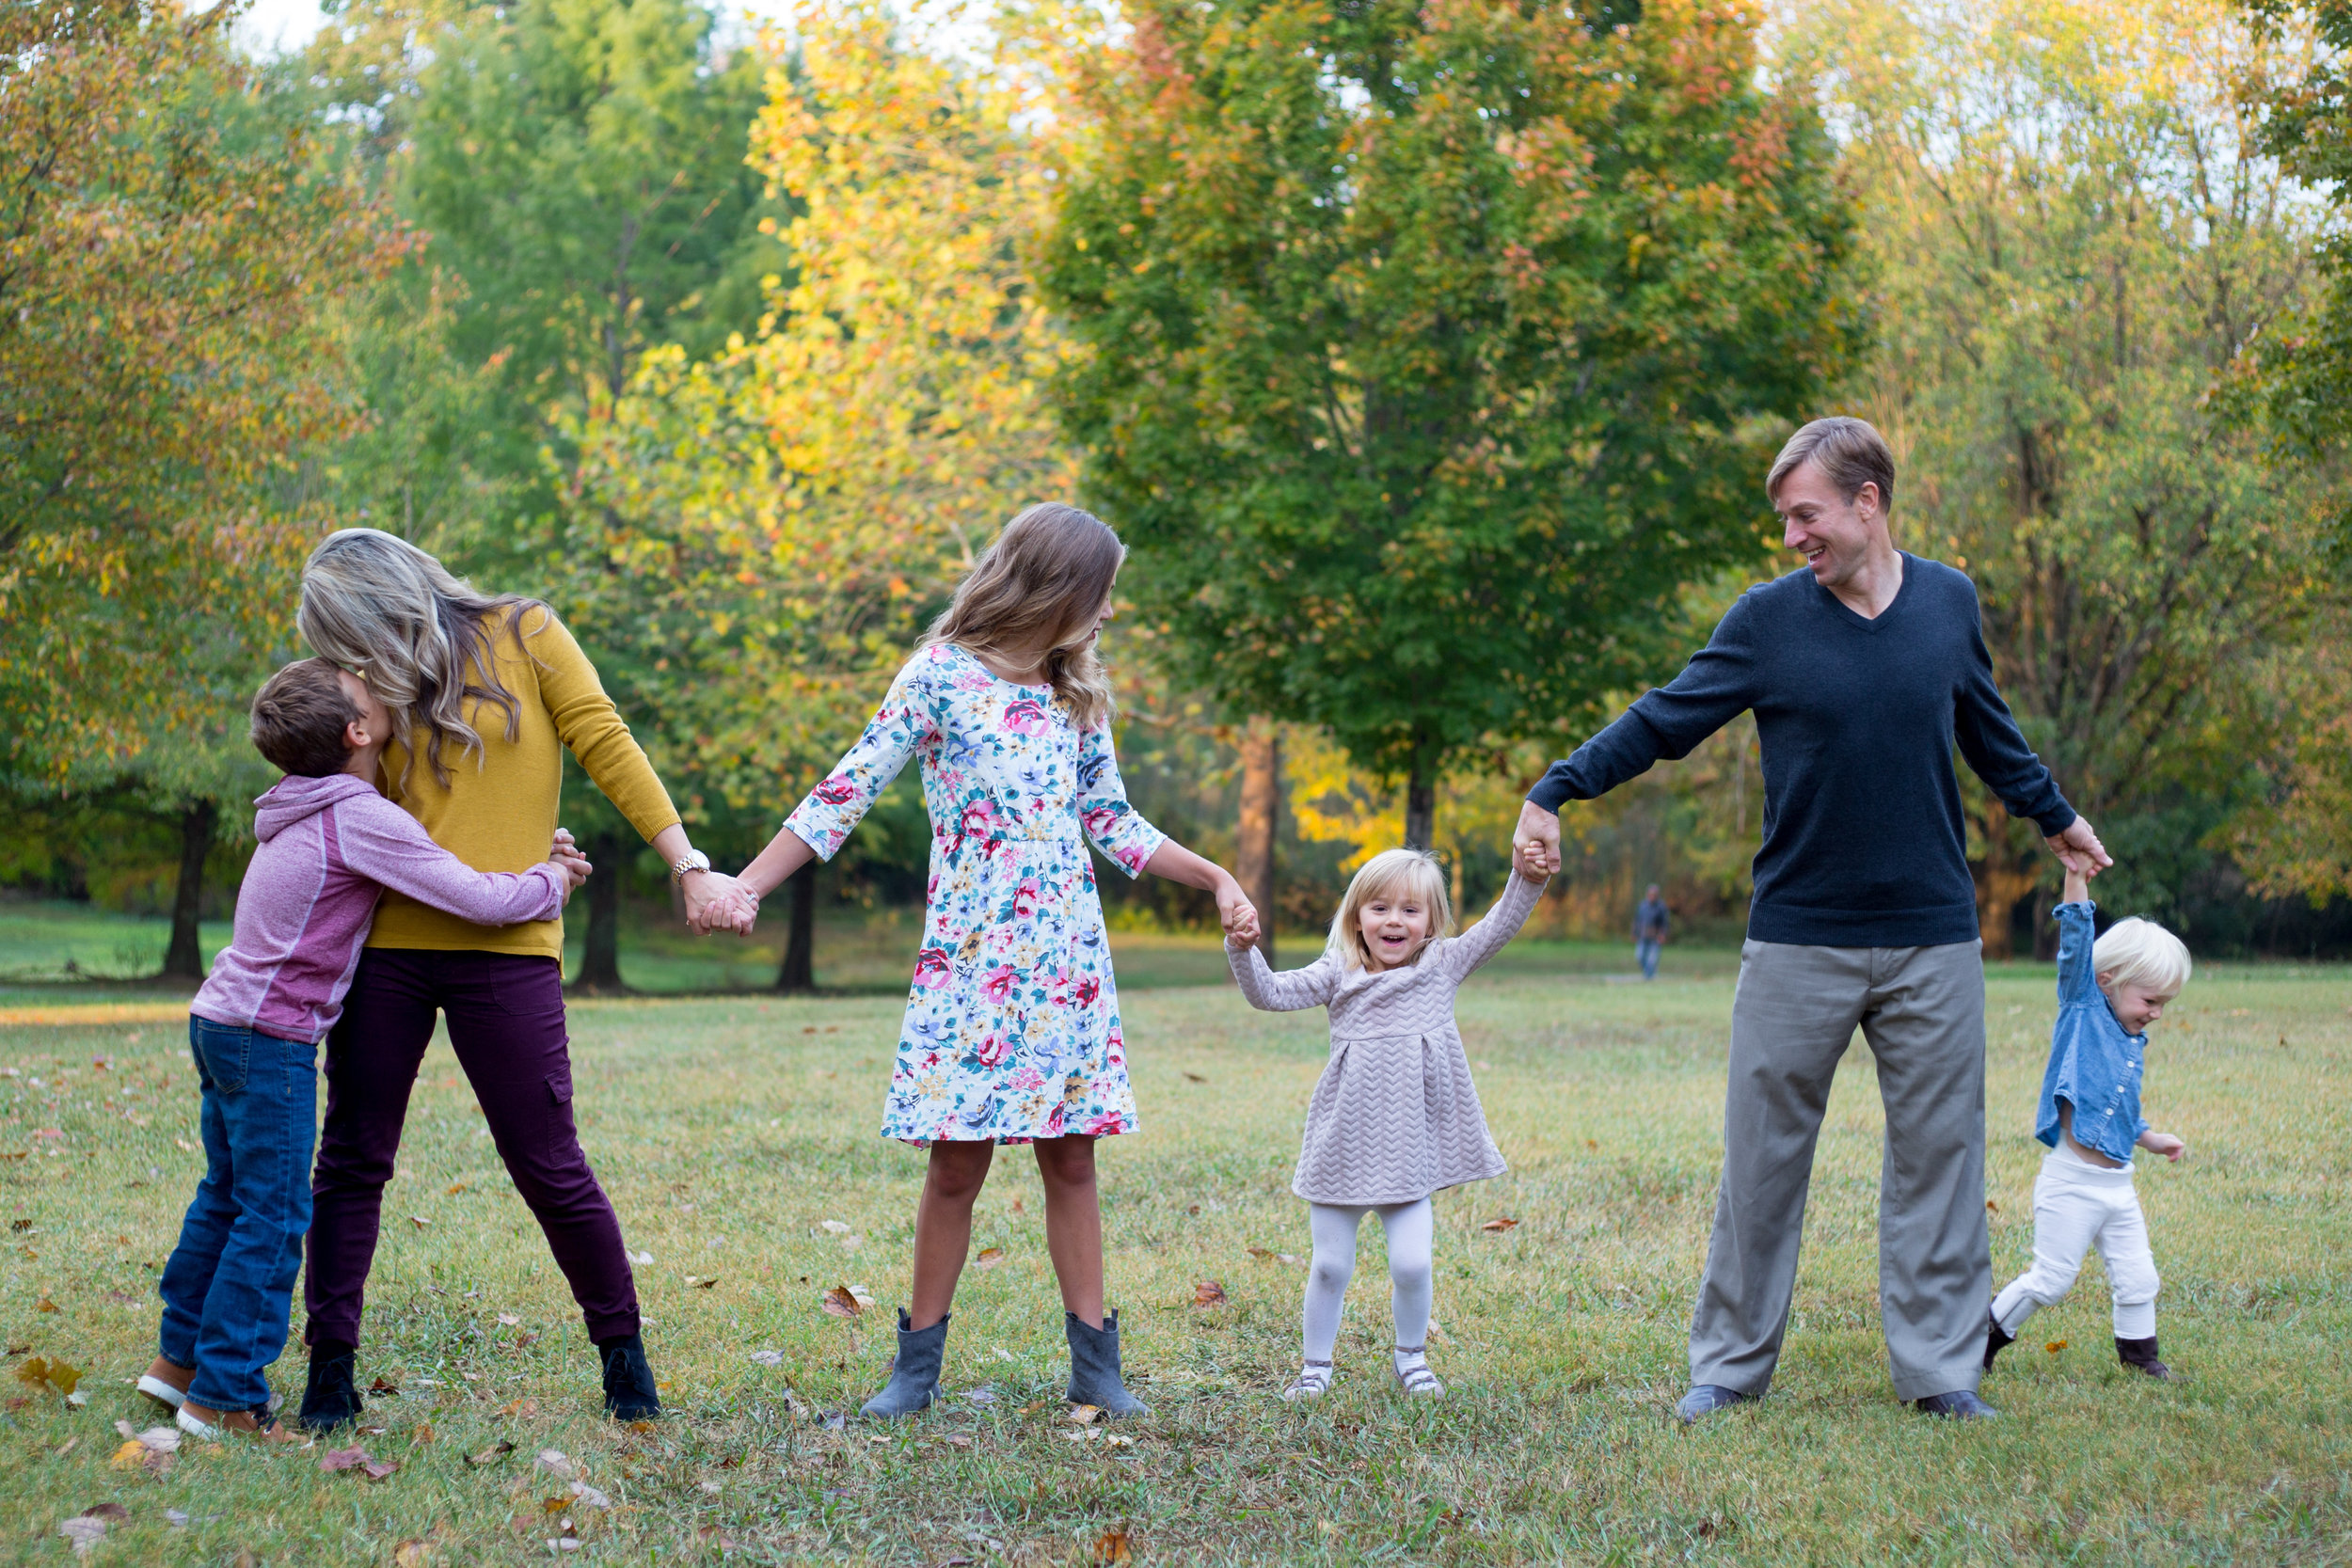 family, poses, outdoor, Knoxville, ideas, outfits, large, country, field, inspiration, funny, with toddler, color scheme, creative, siblings, fall, unique, natural, natural light, photoshoot, colorful, vibrant, fall